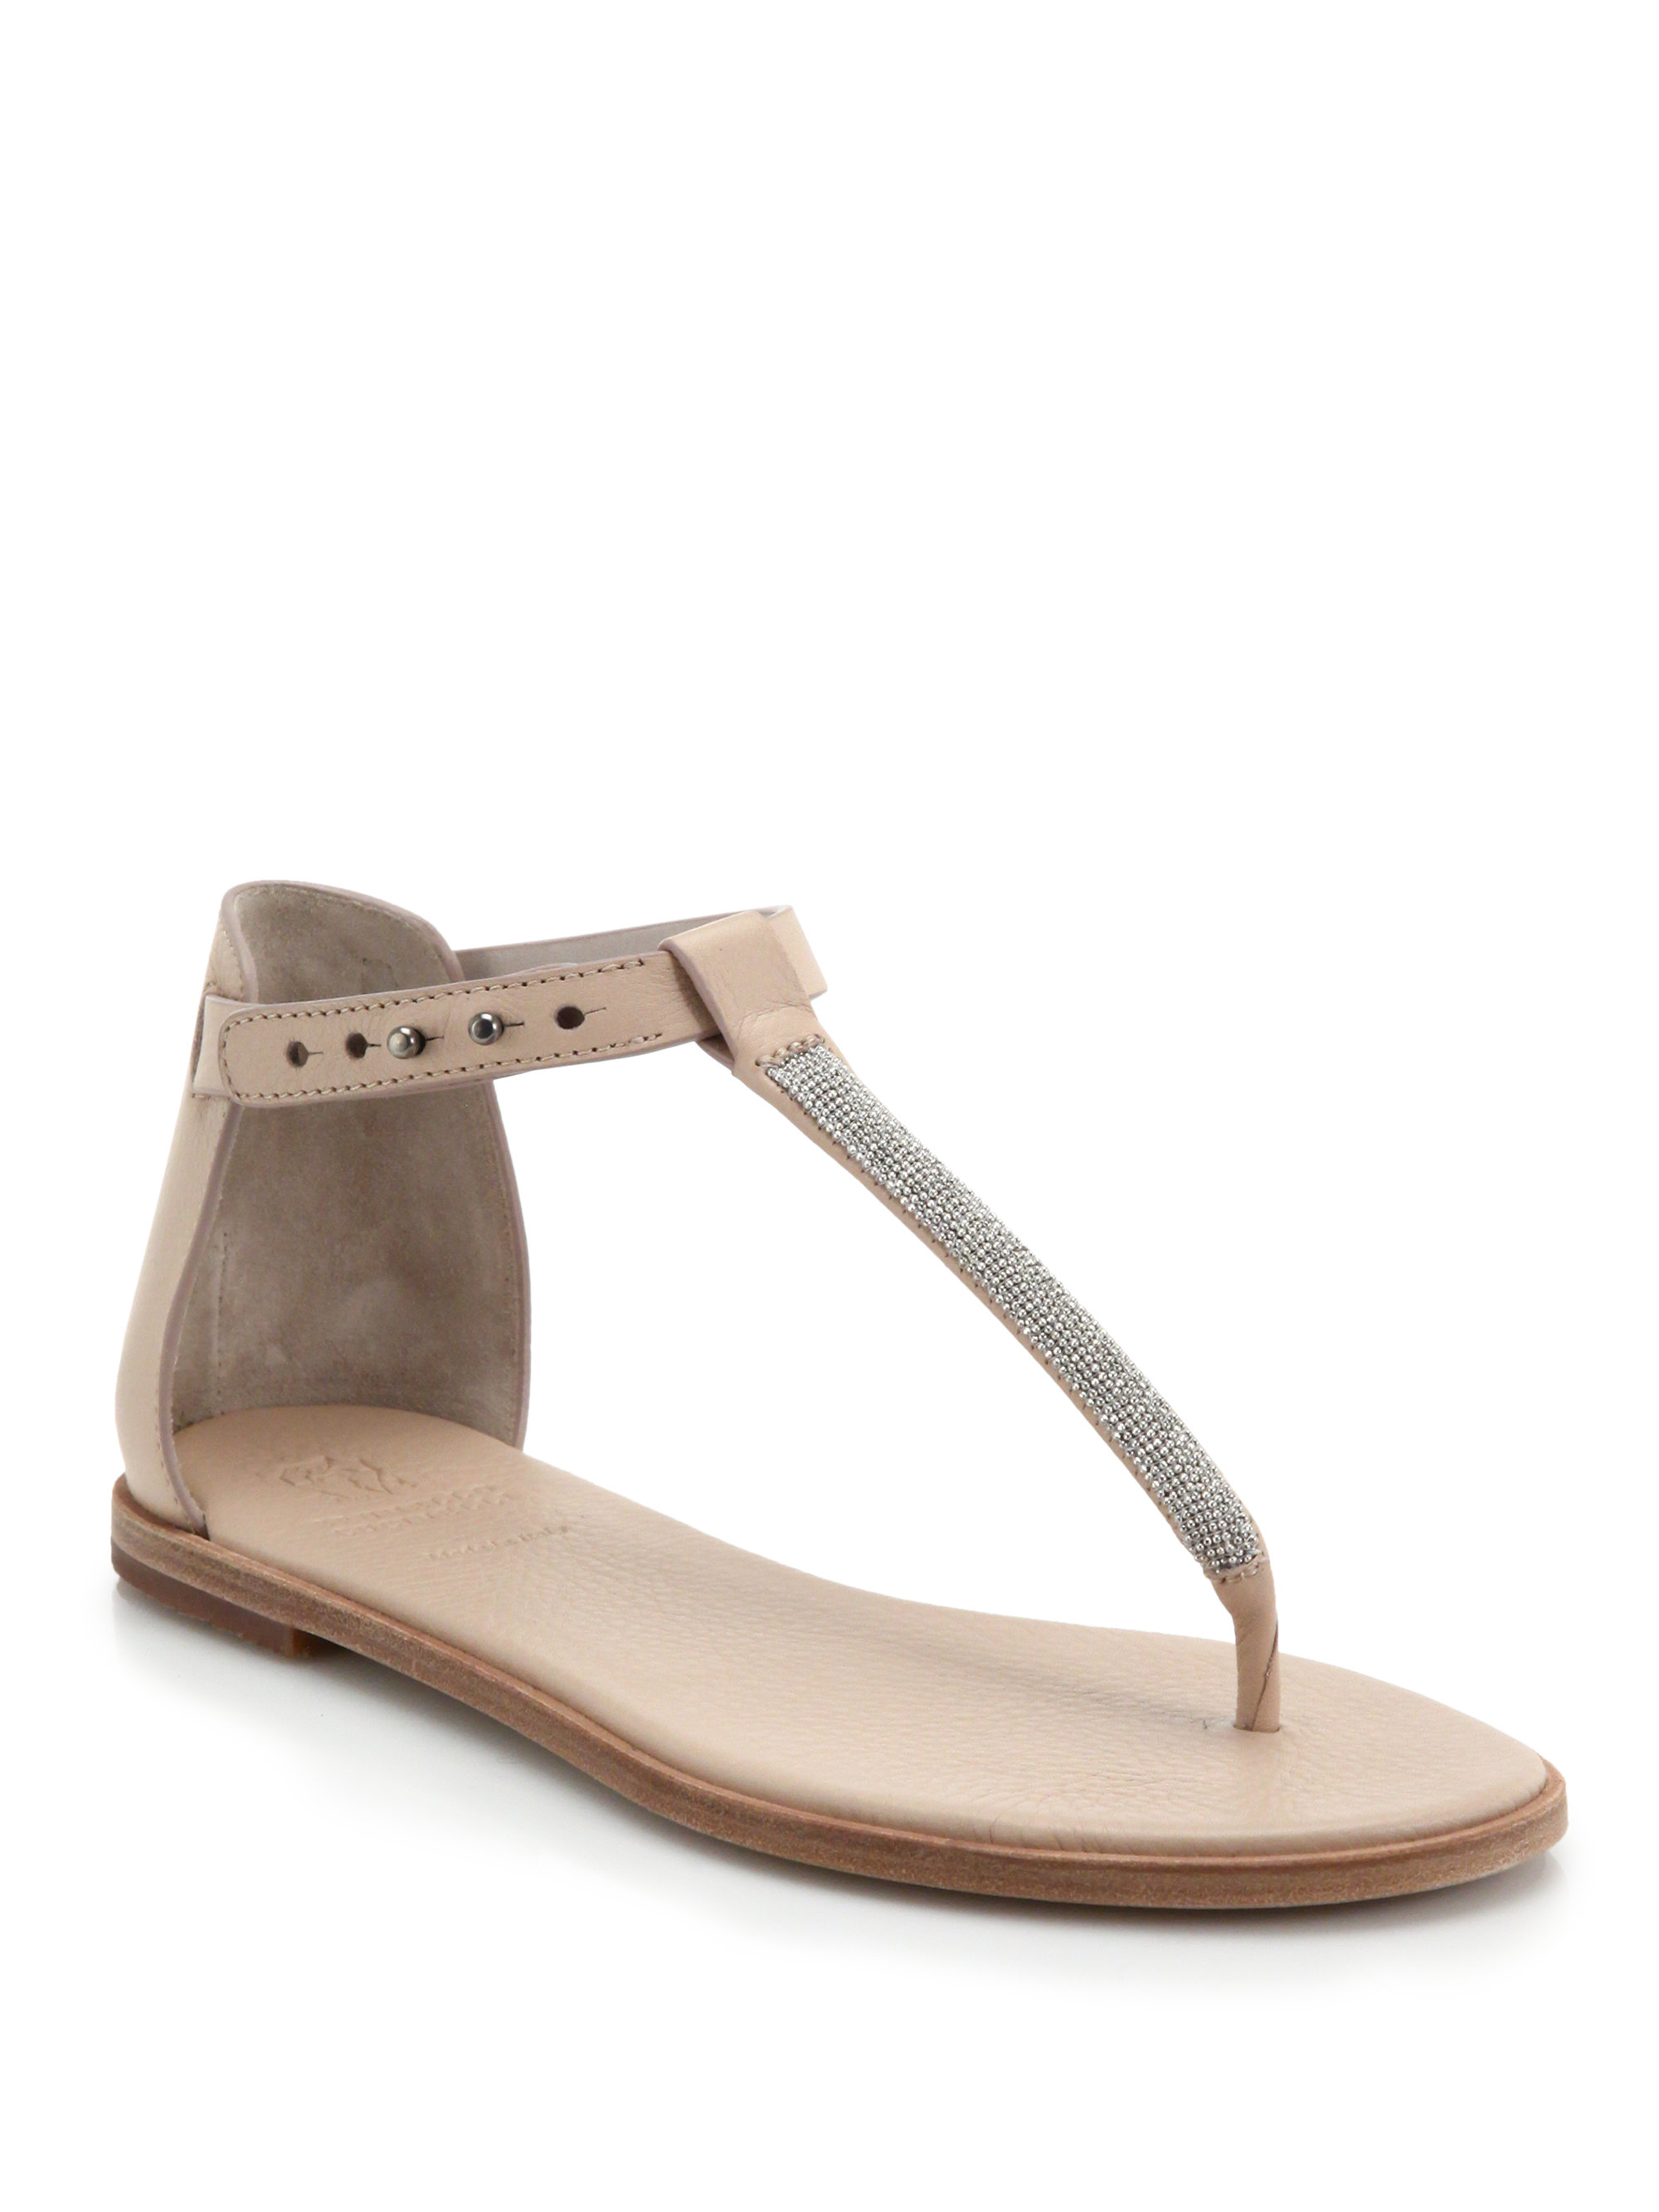 573dc4d30a18ed Lyst - Brunello Cucinelli Monili Chain-Trimmed Leather Thong Sandals ...